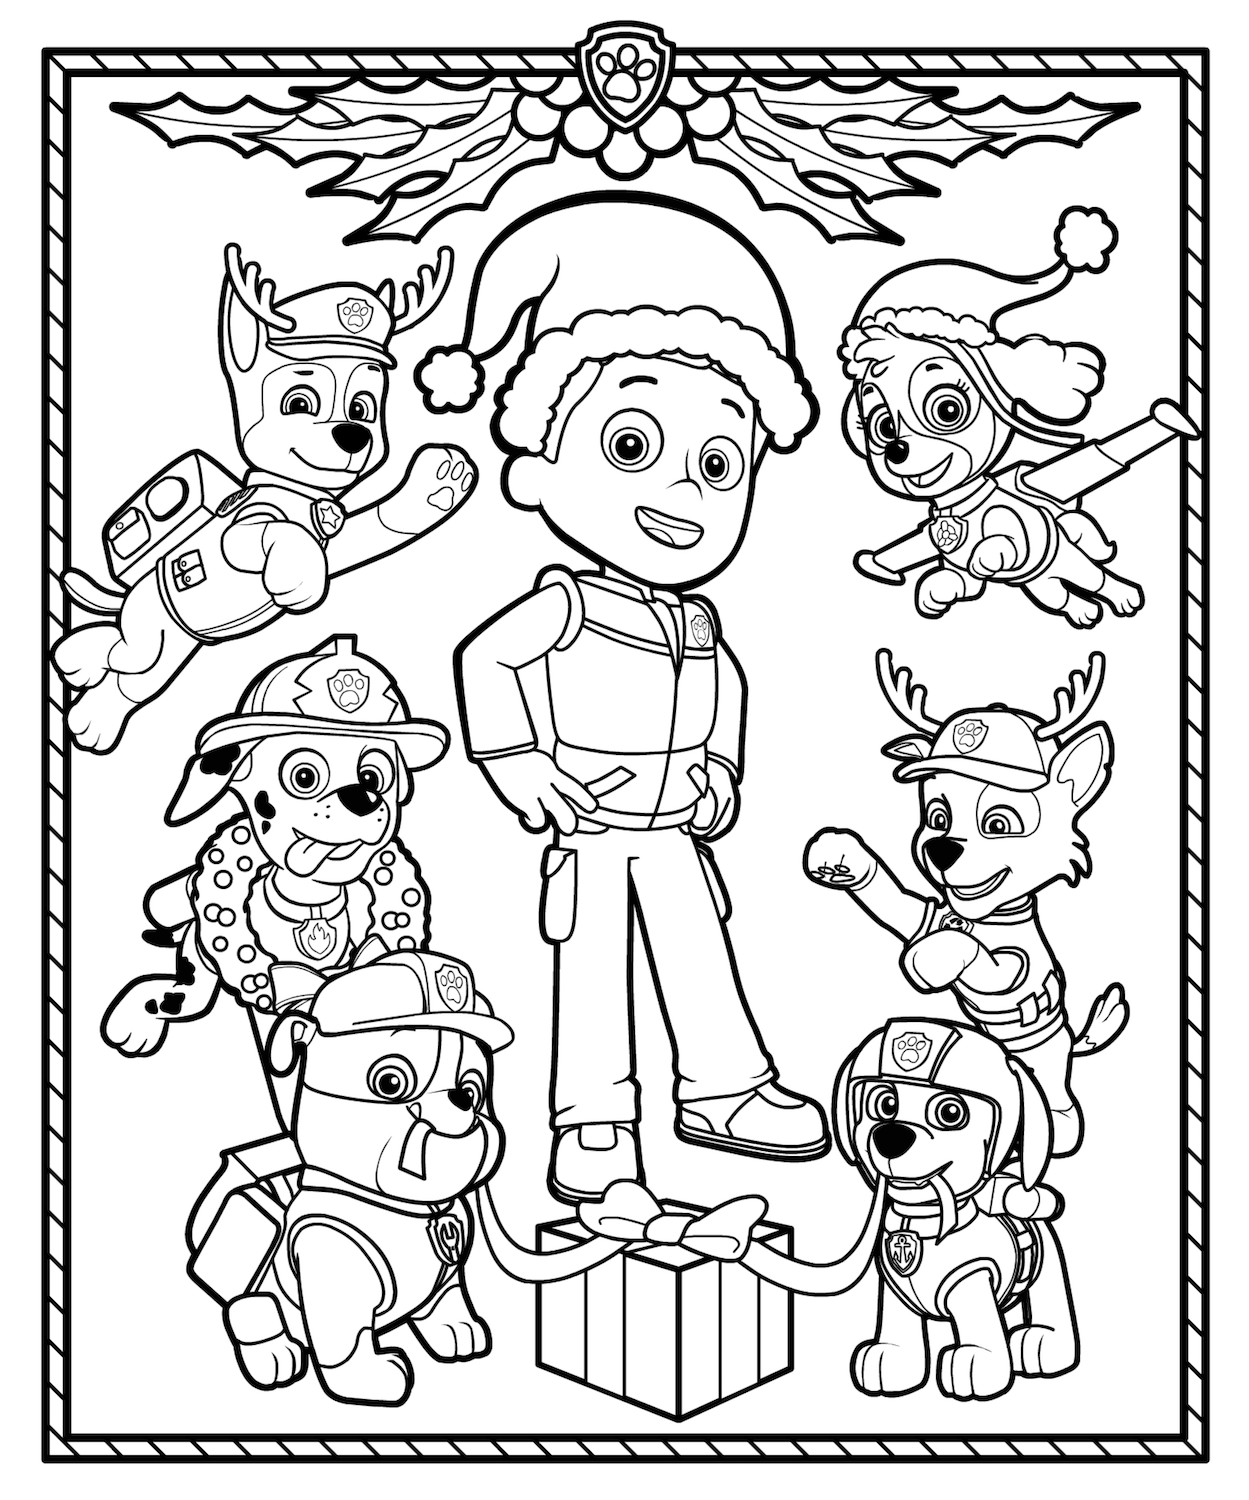 Christmas Coloring Pages Paw patrol coloring, Paw patrol